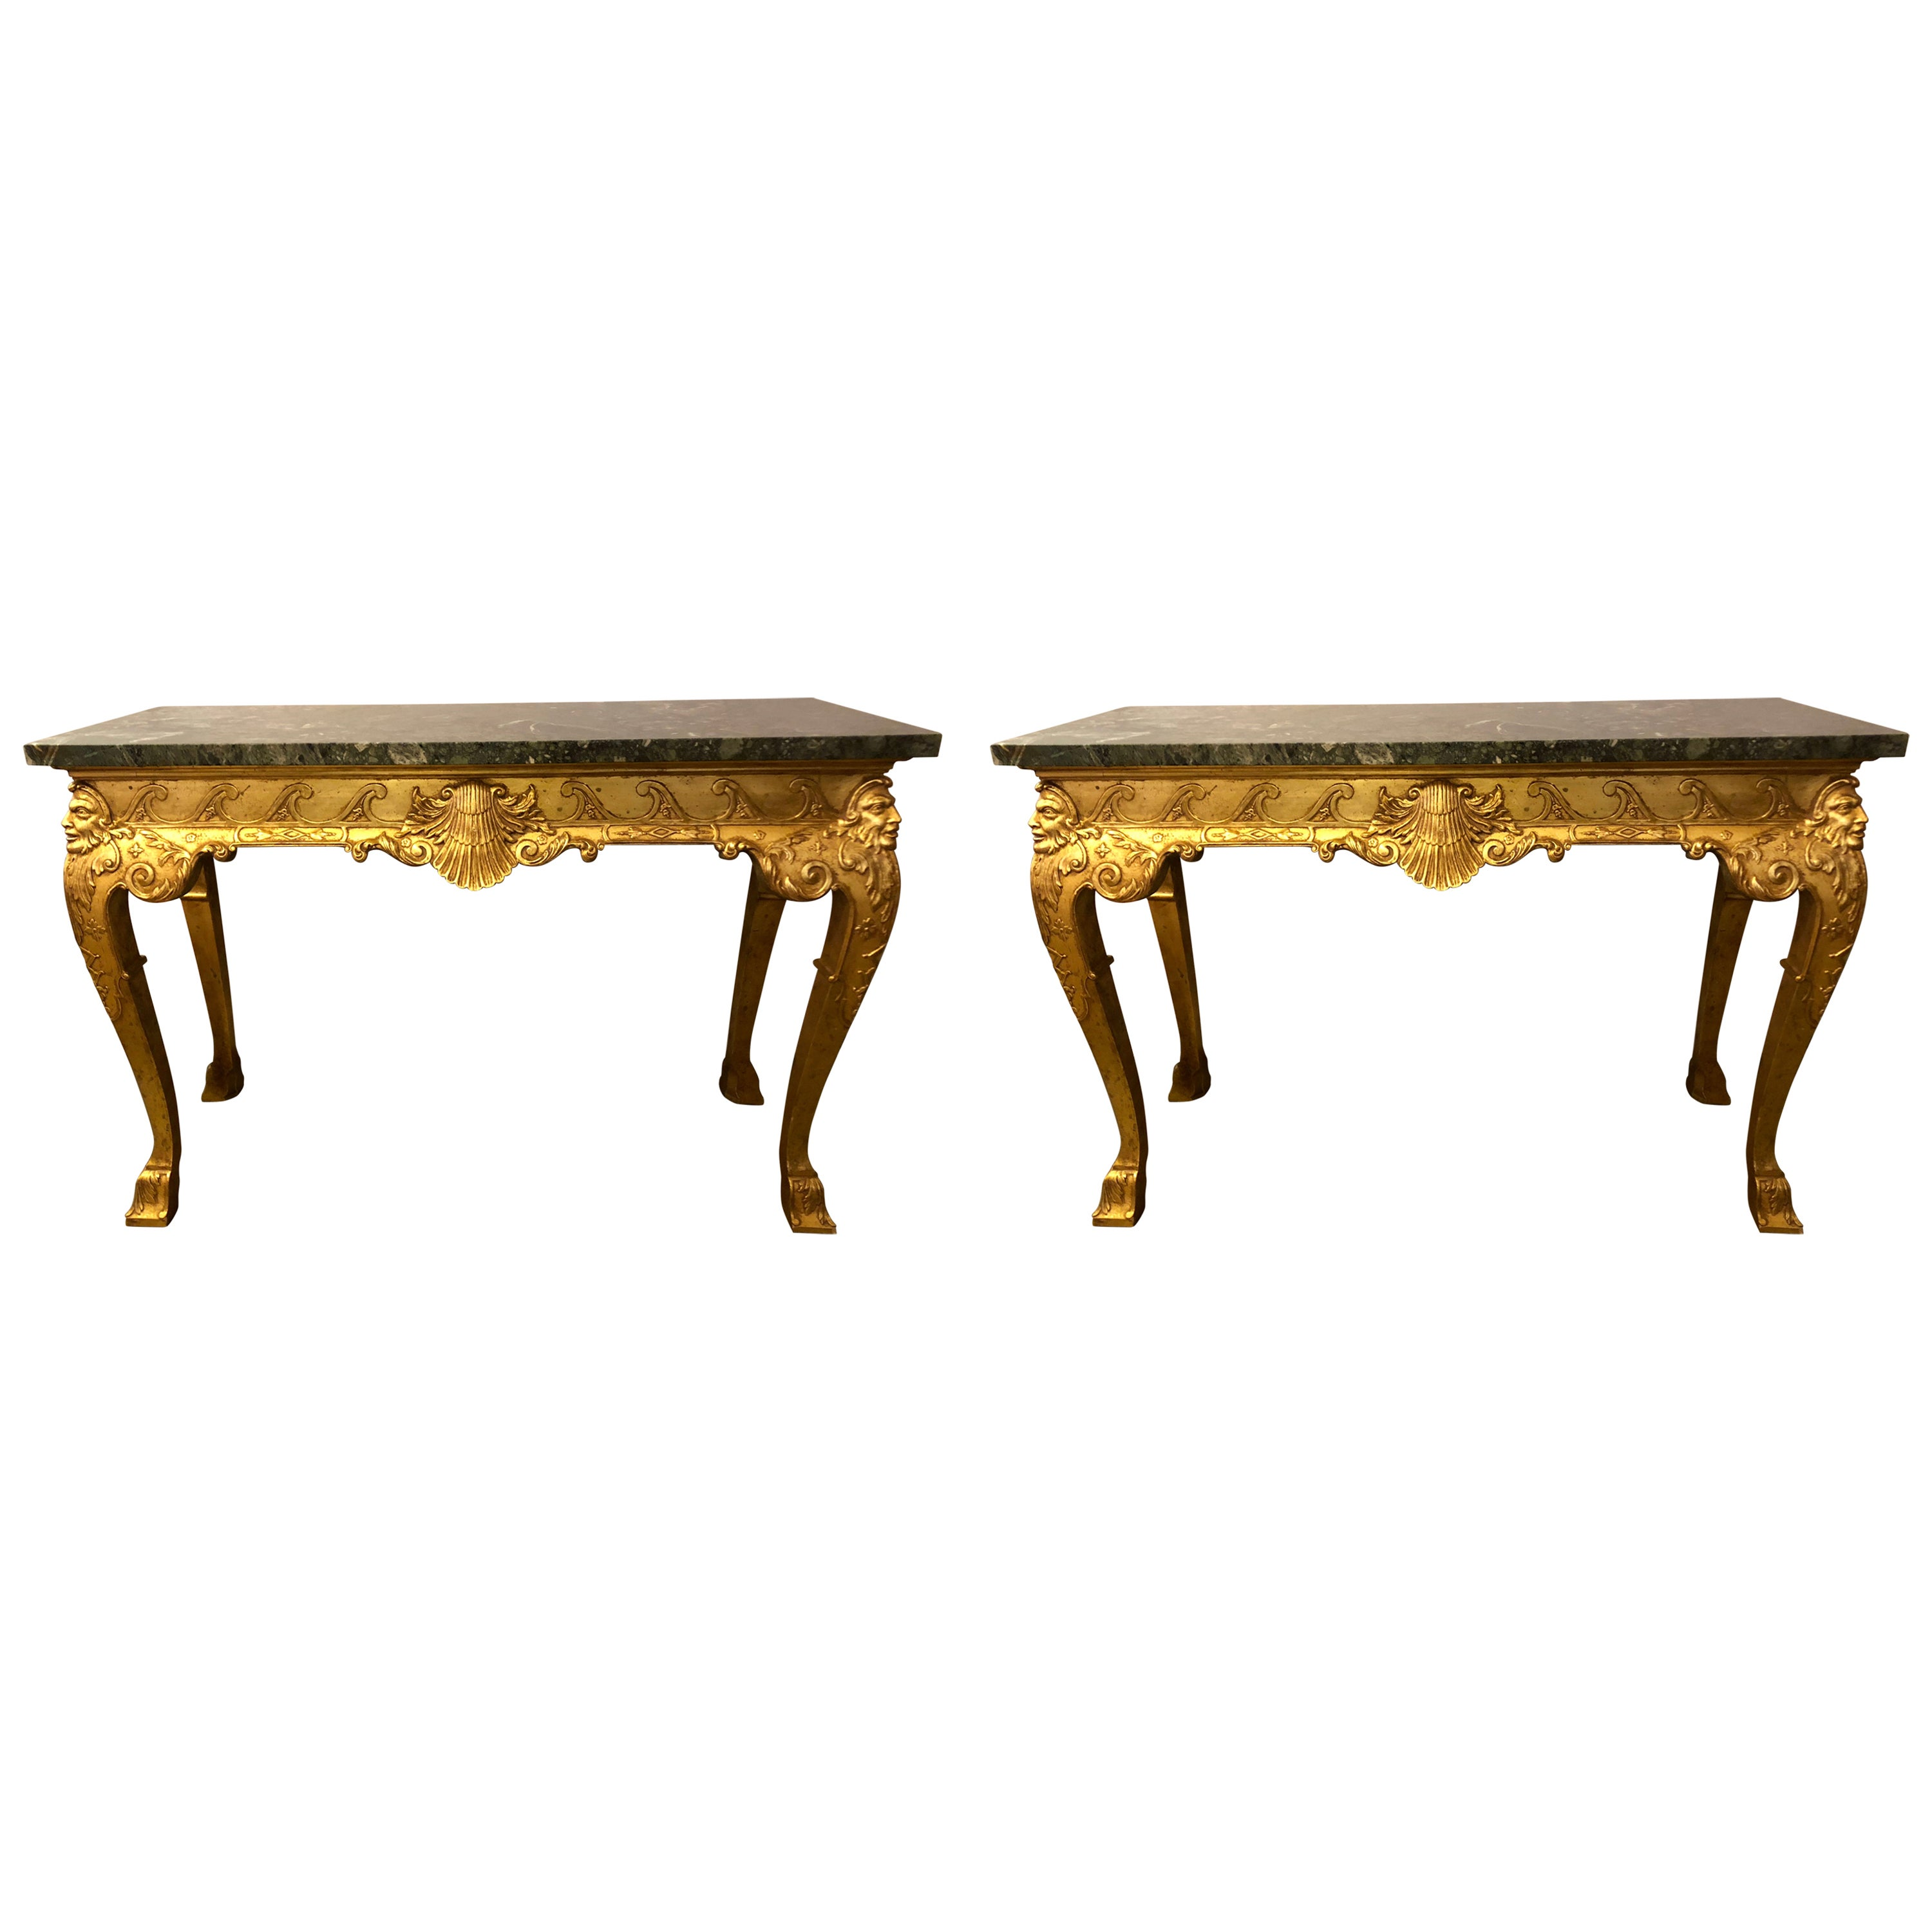 19th Century Pair of George II Style Carved Giltwood Marble Top Console Tables